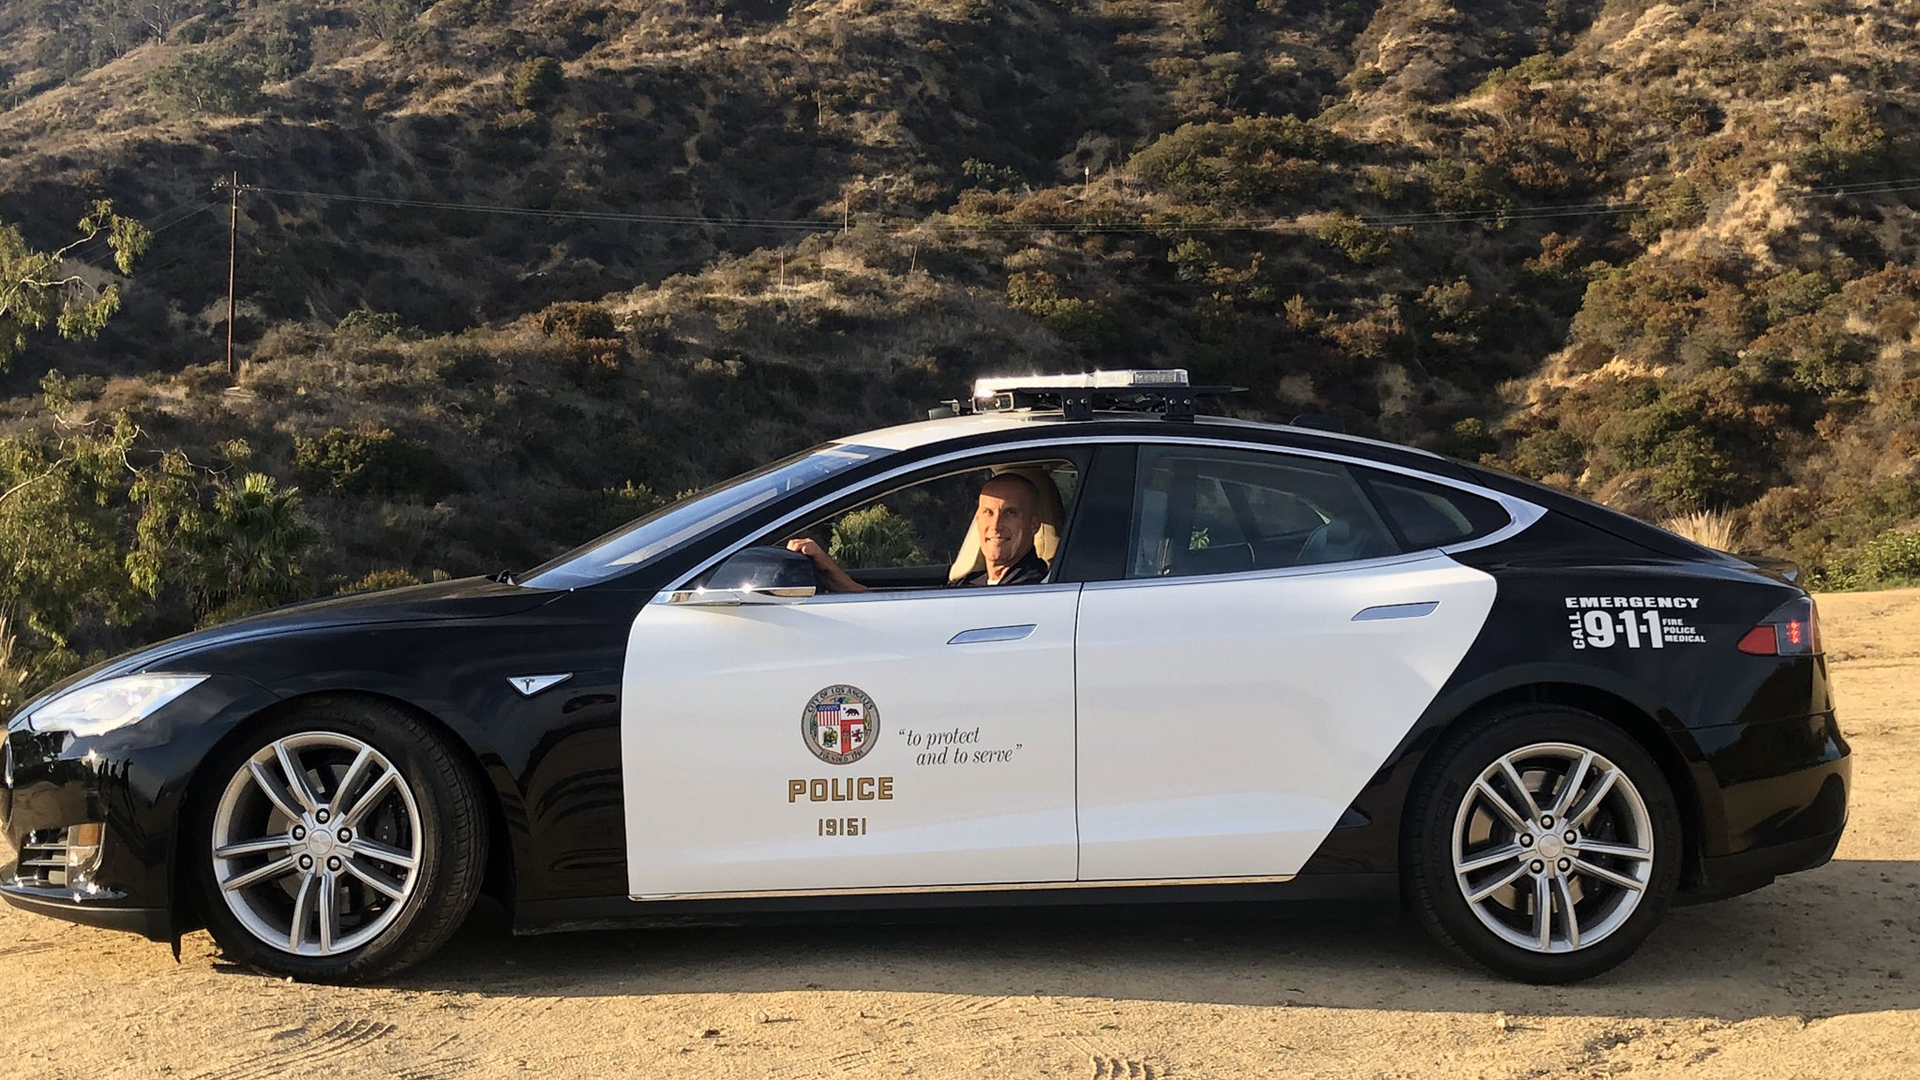 A Tesla Model S being tested by the Los Angeles Police Department is shown in Hollywood in a photo released by the LAPD on Dec. 11, 2019.